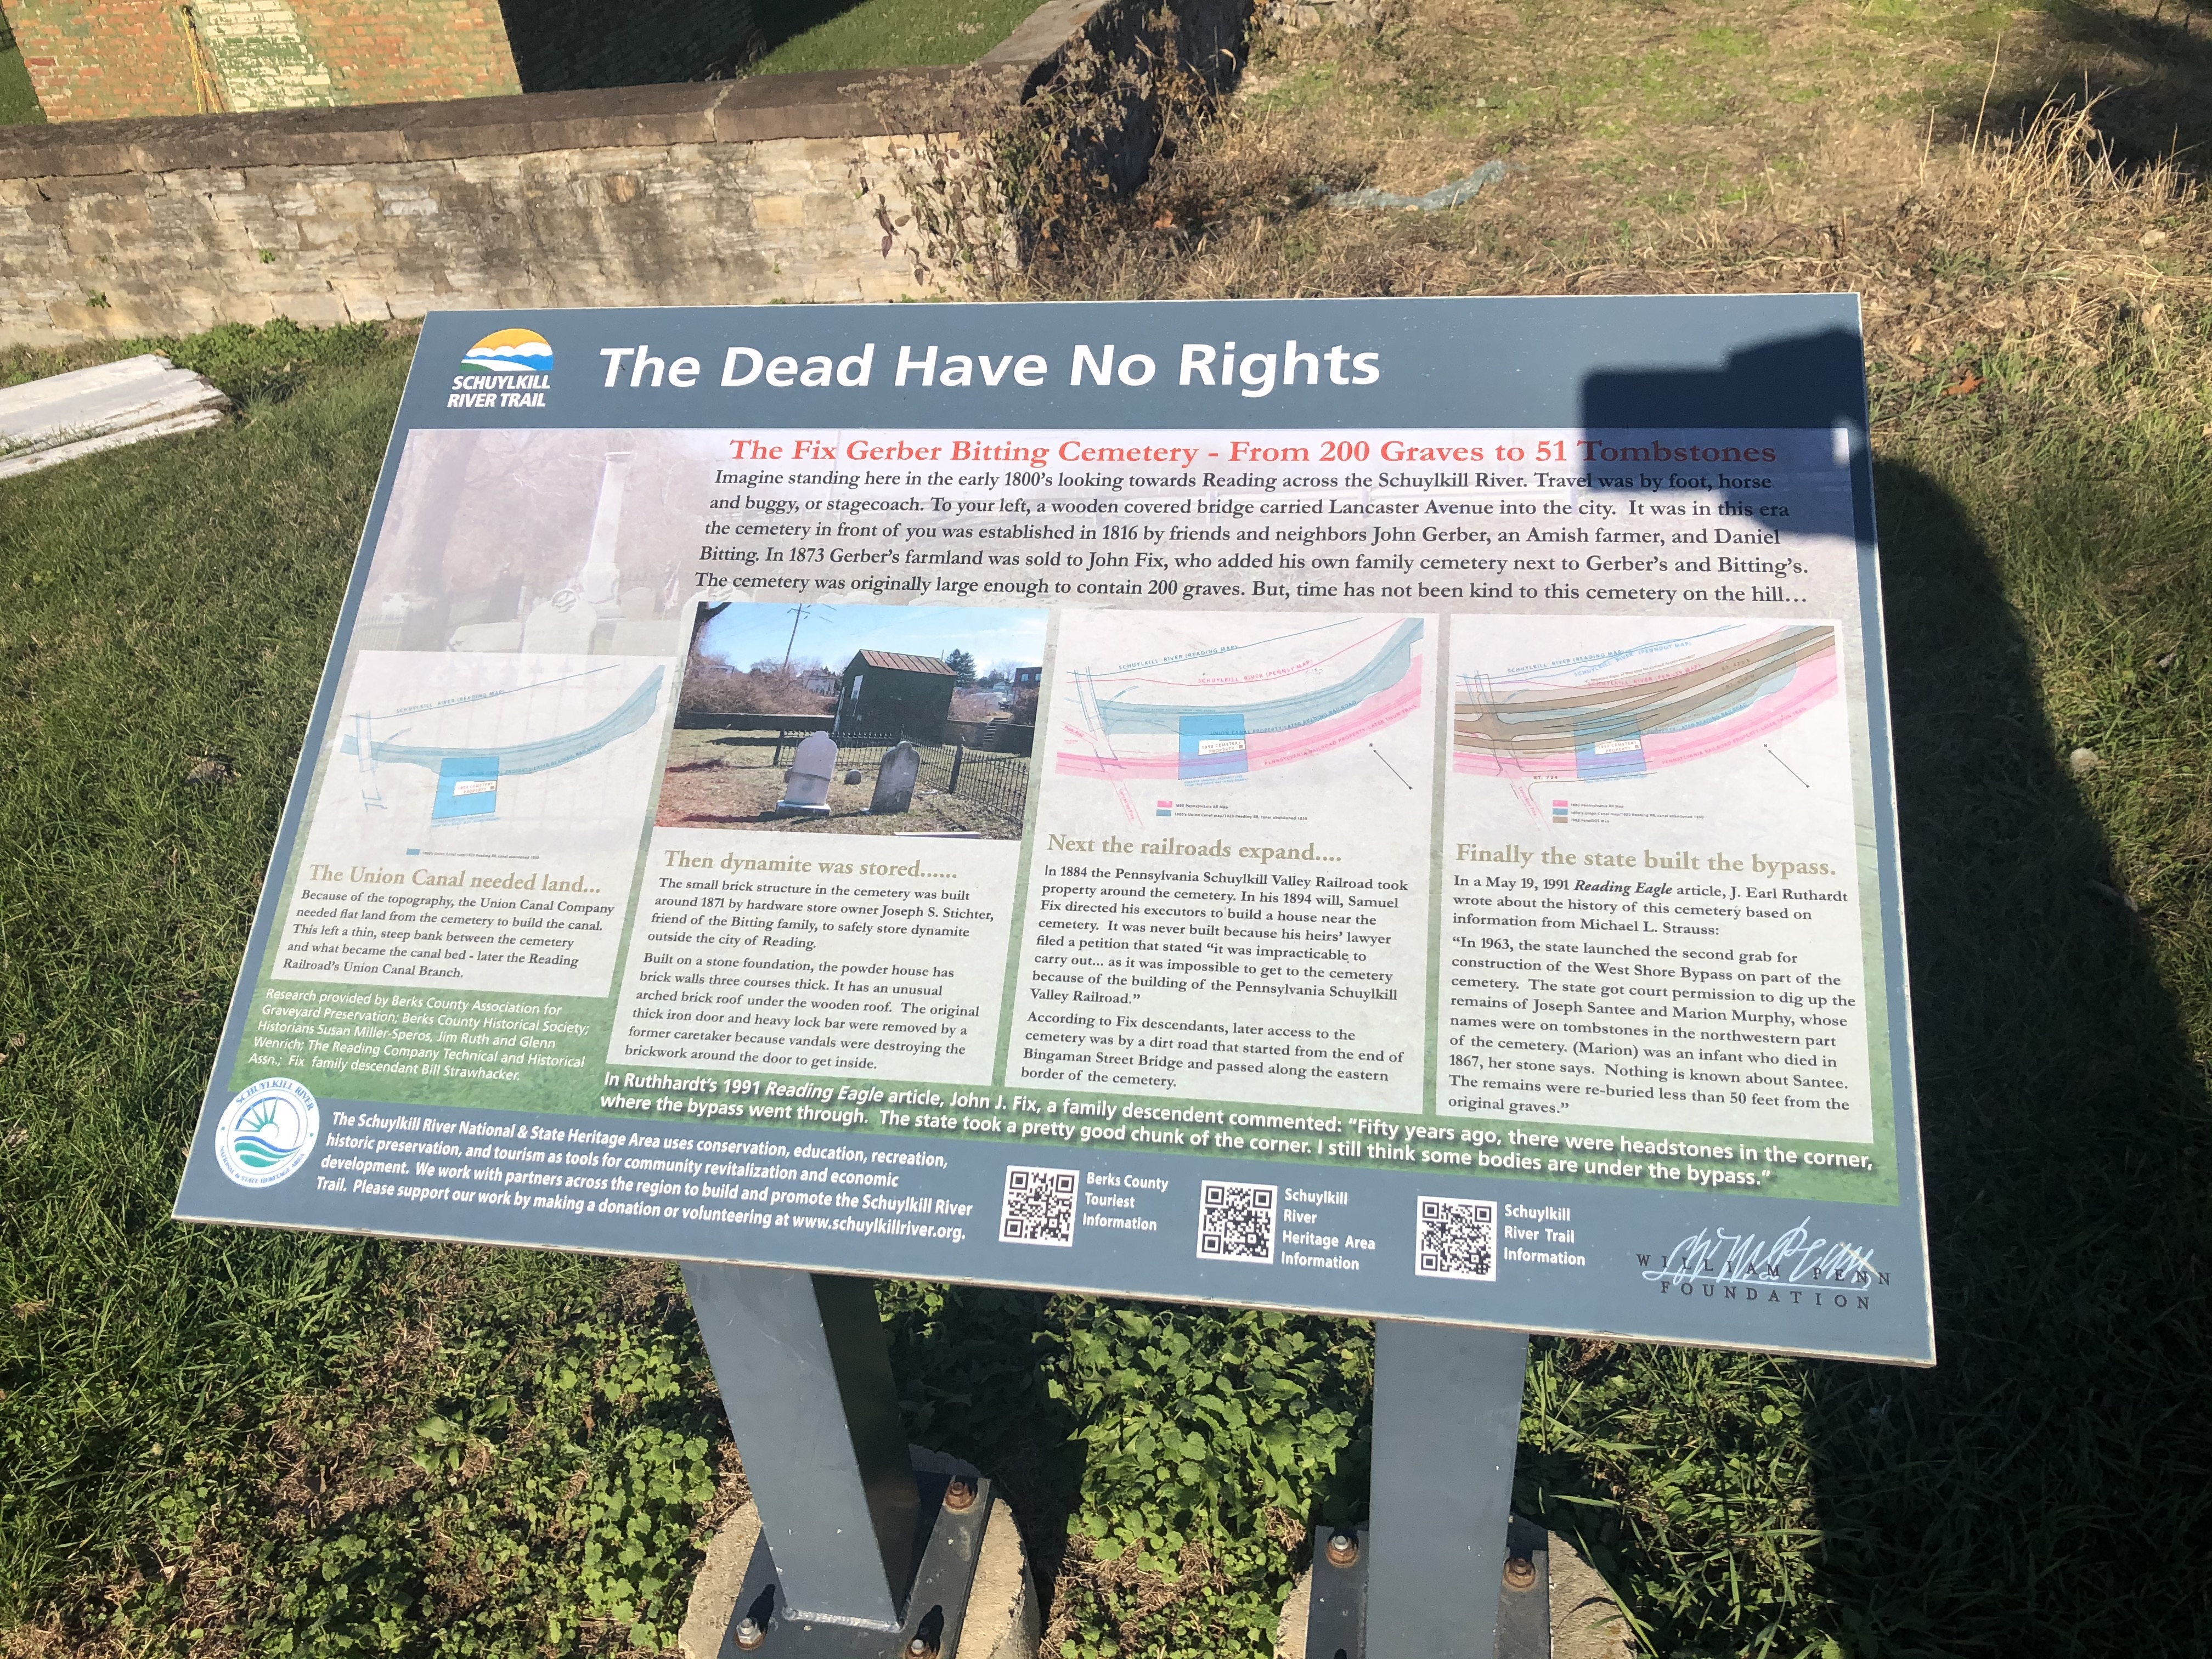 The Dead Have No Rights Marker